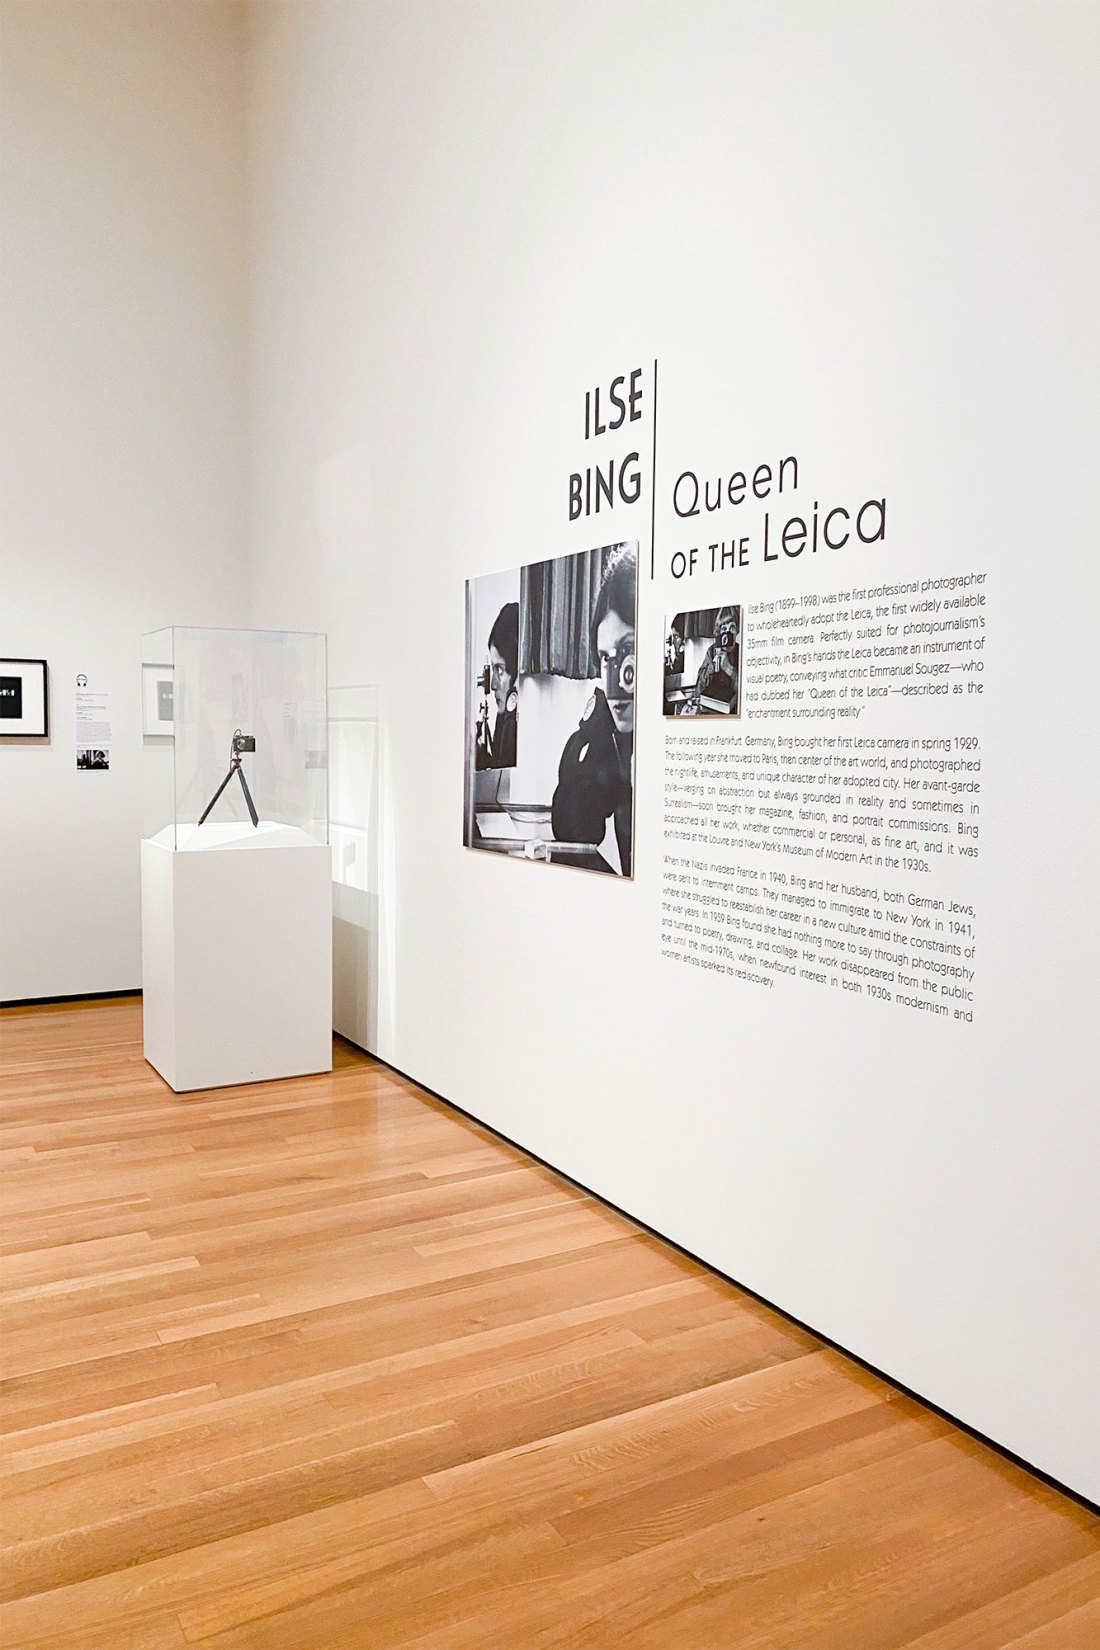 Ilse Bing at the Cleveland Museum of Art